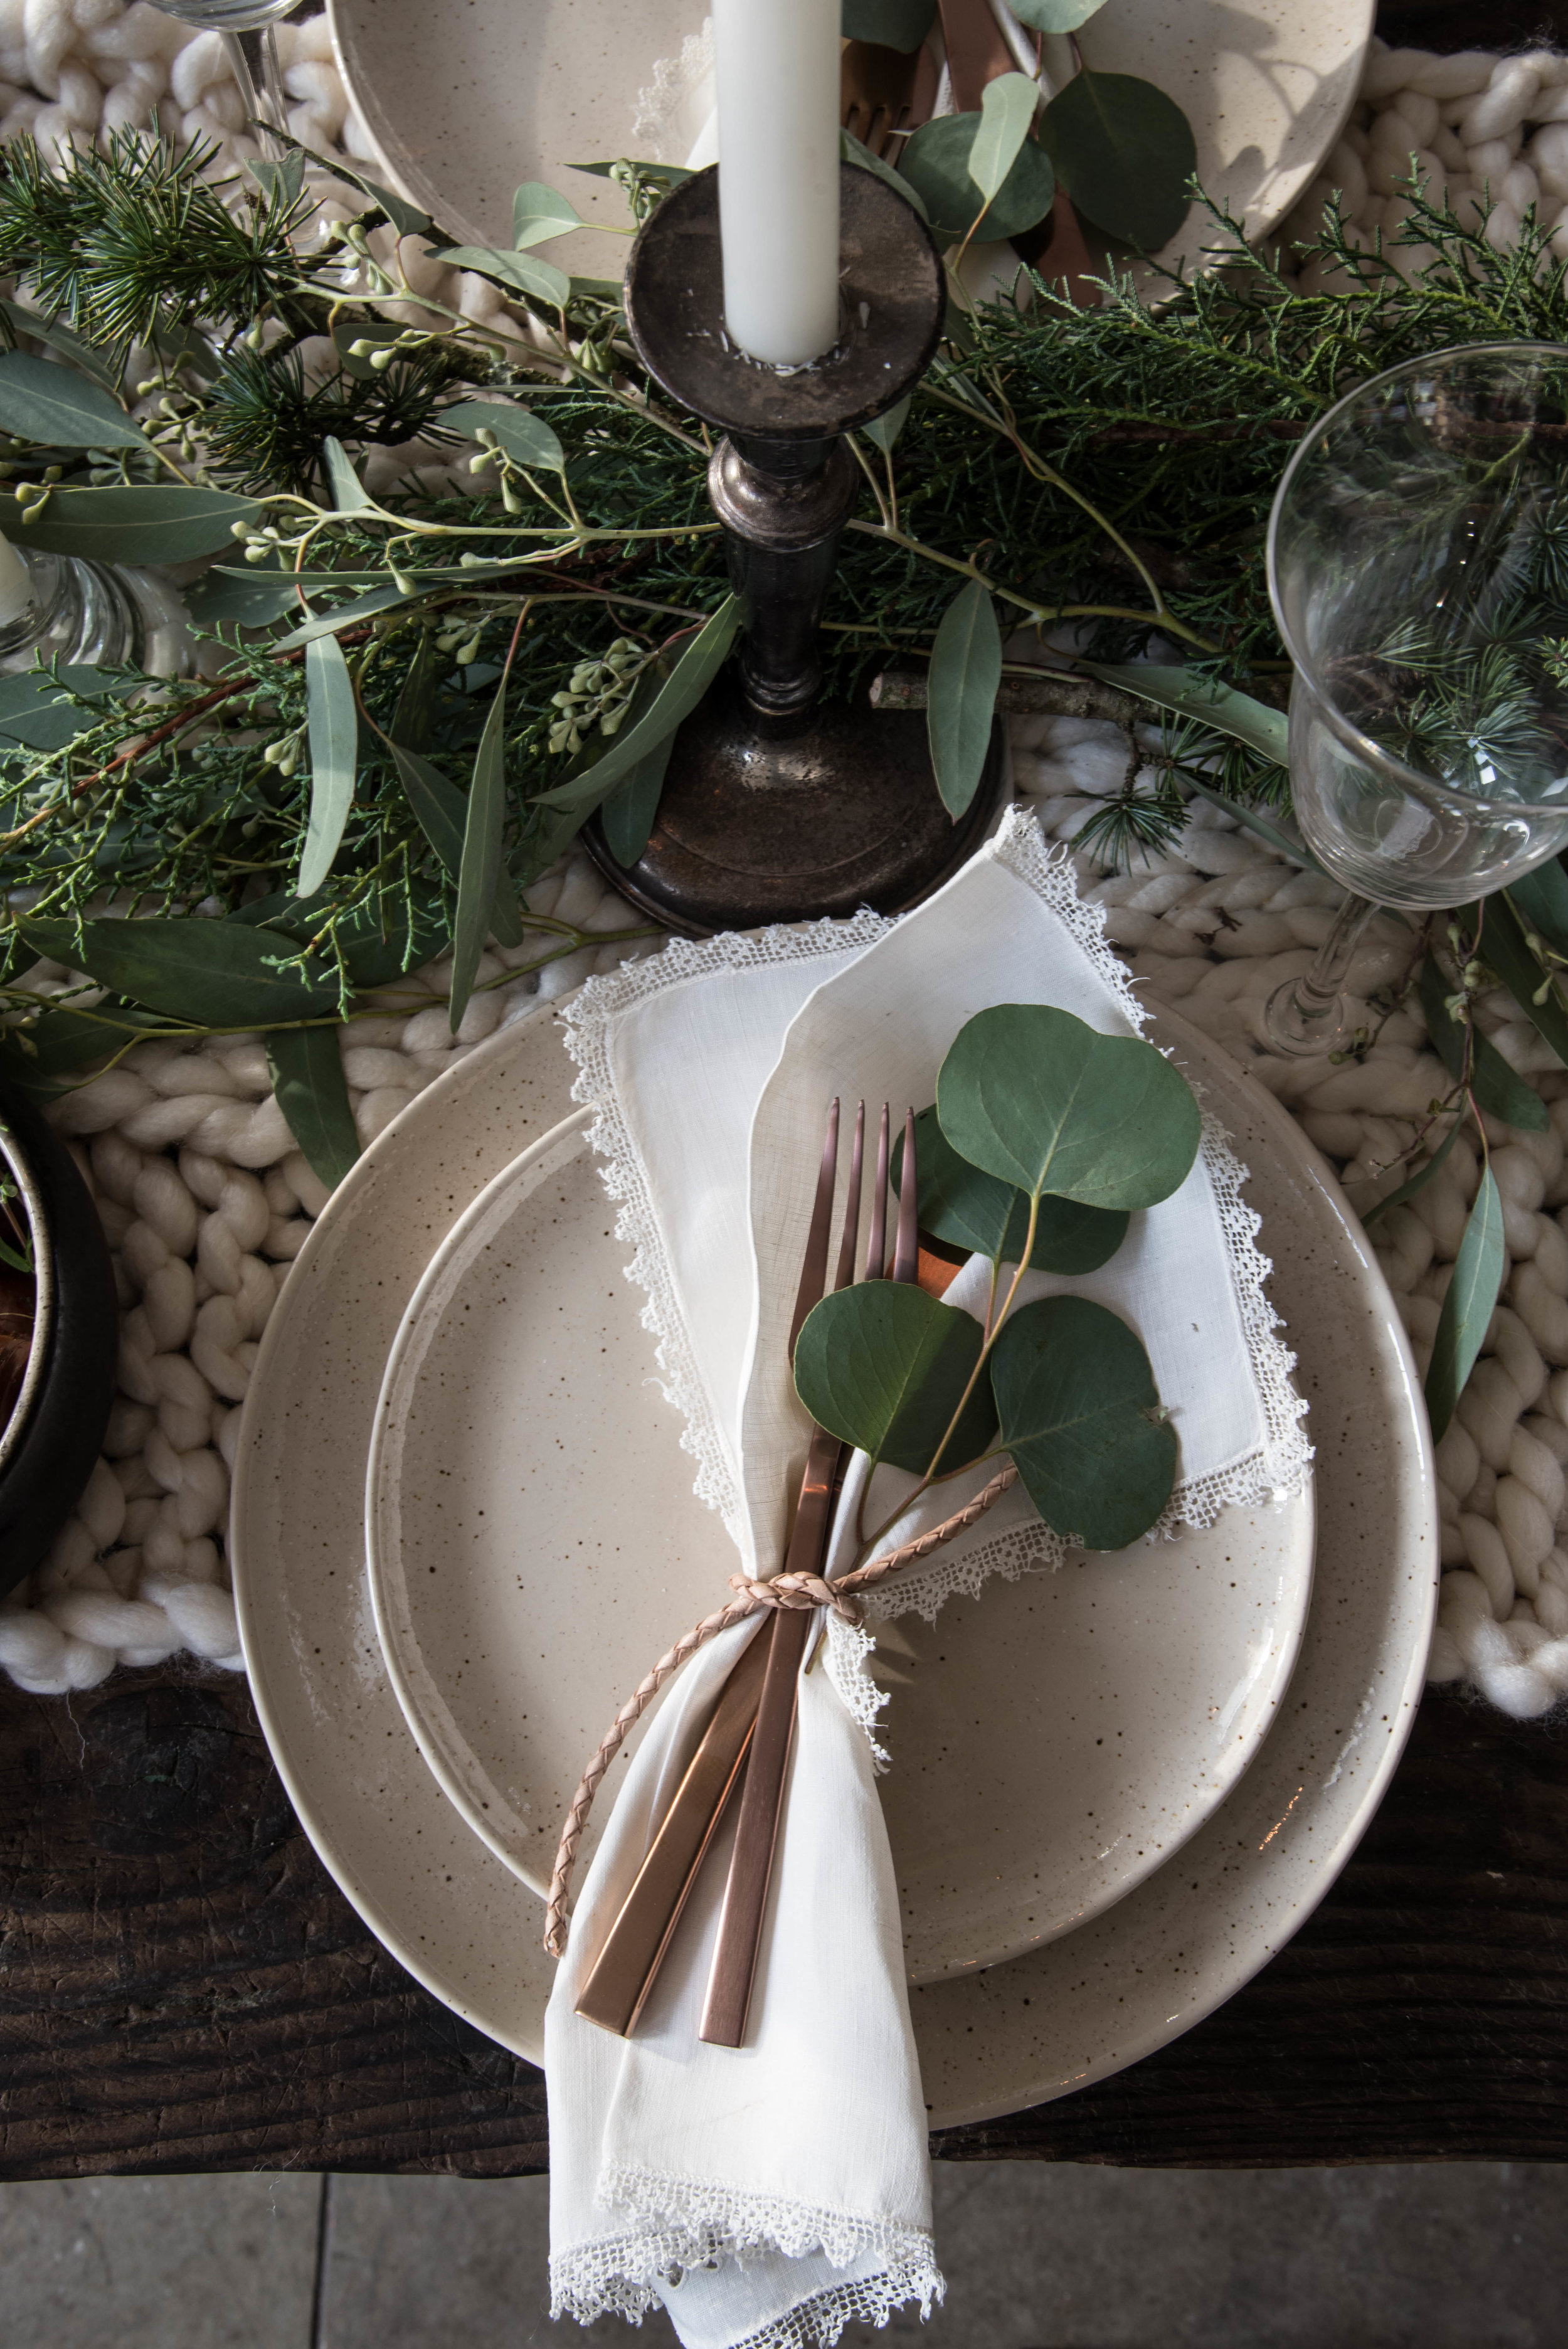 ROSE & IVY Journal Winter Light A ROSE & IVY Journal Holiday Table Setting